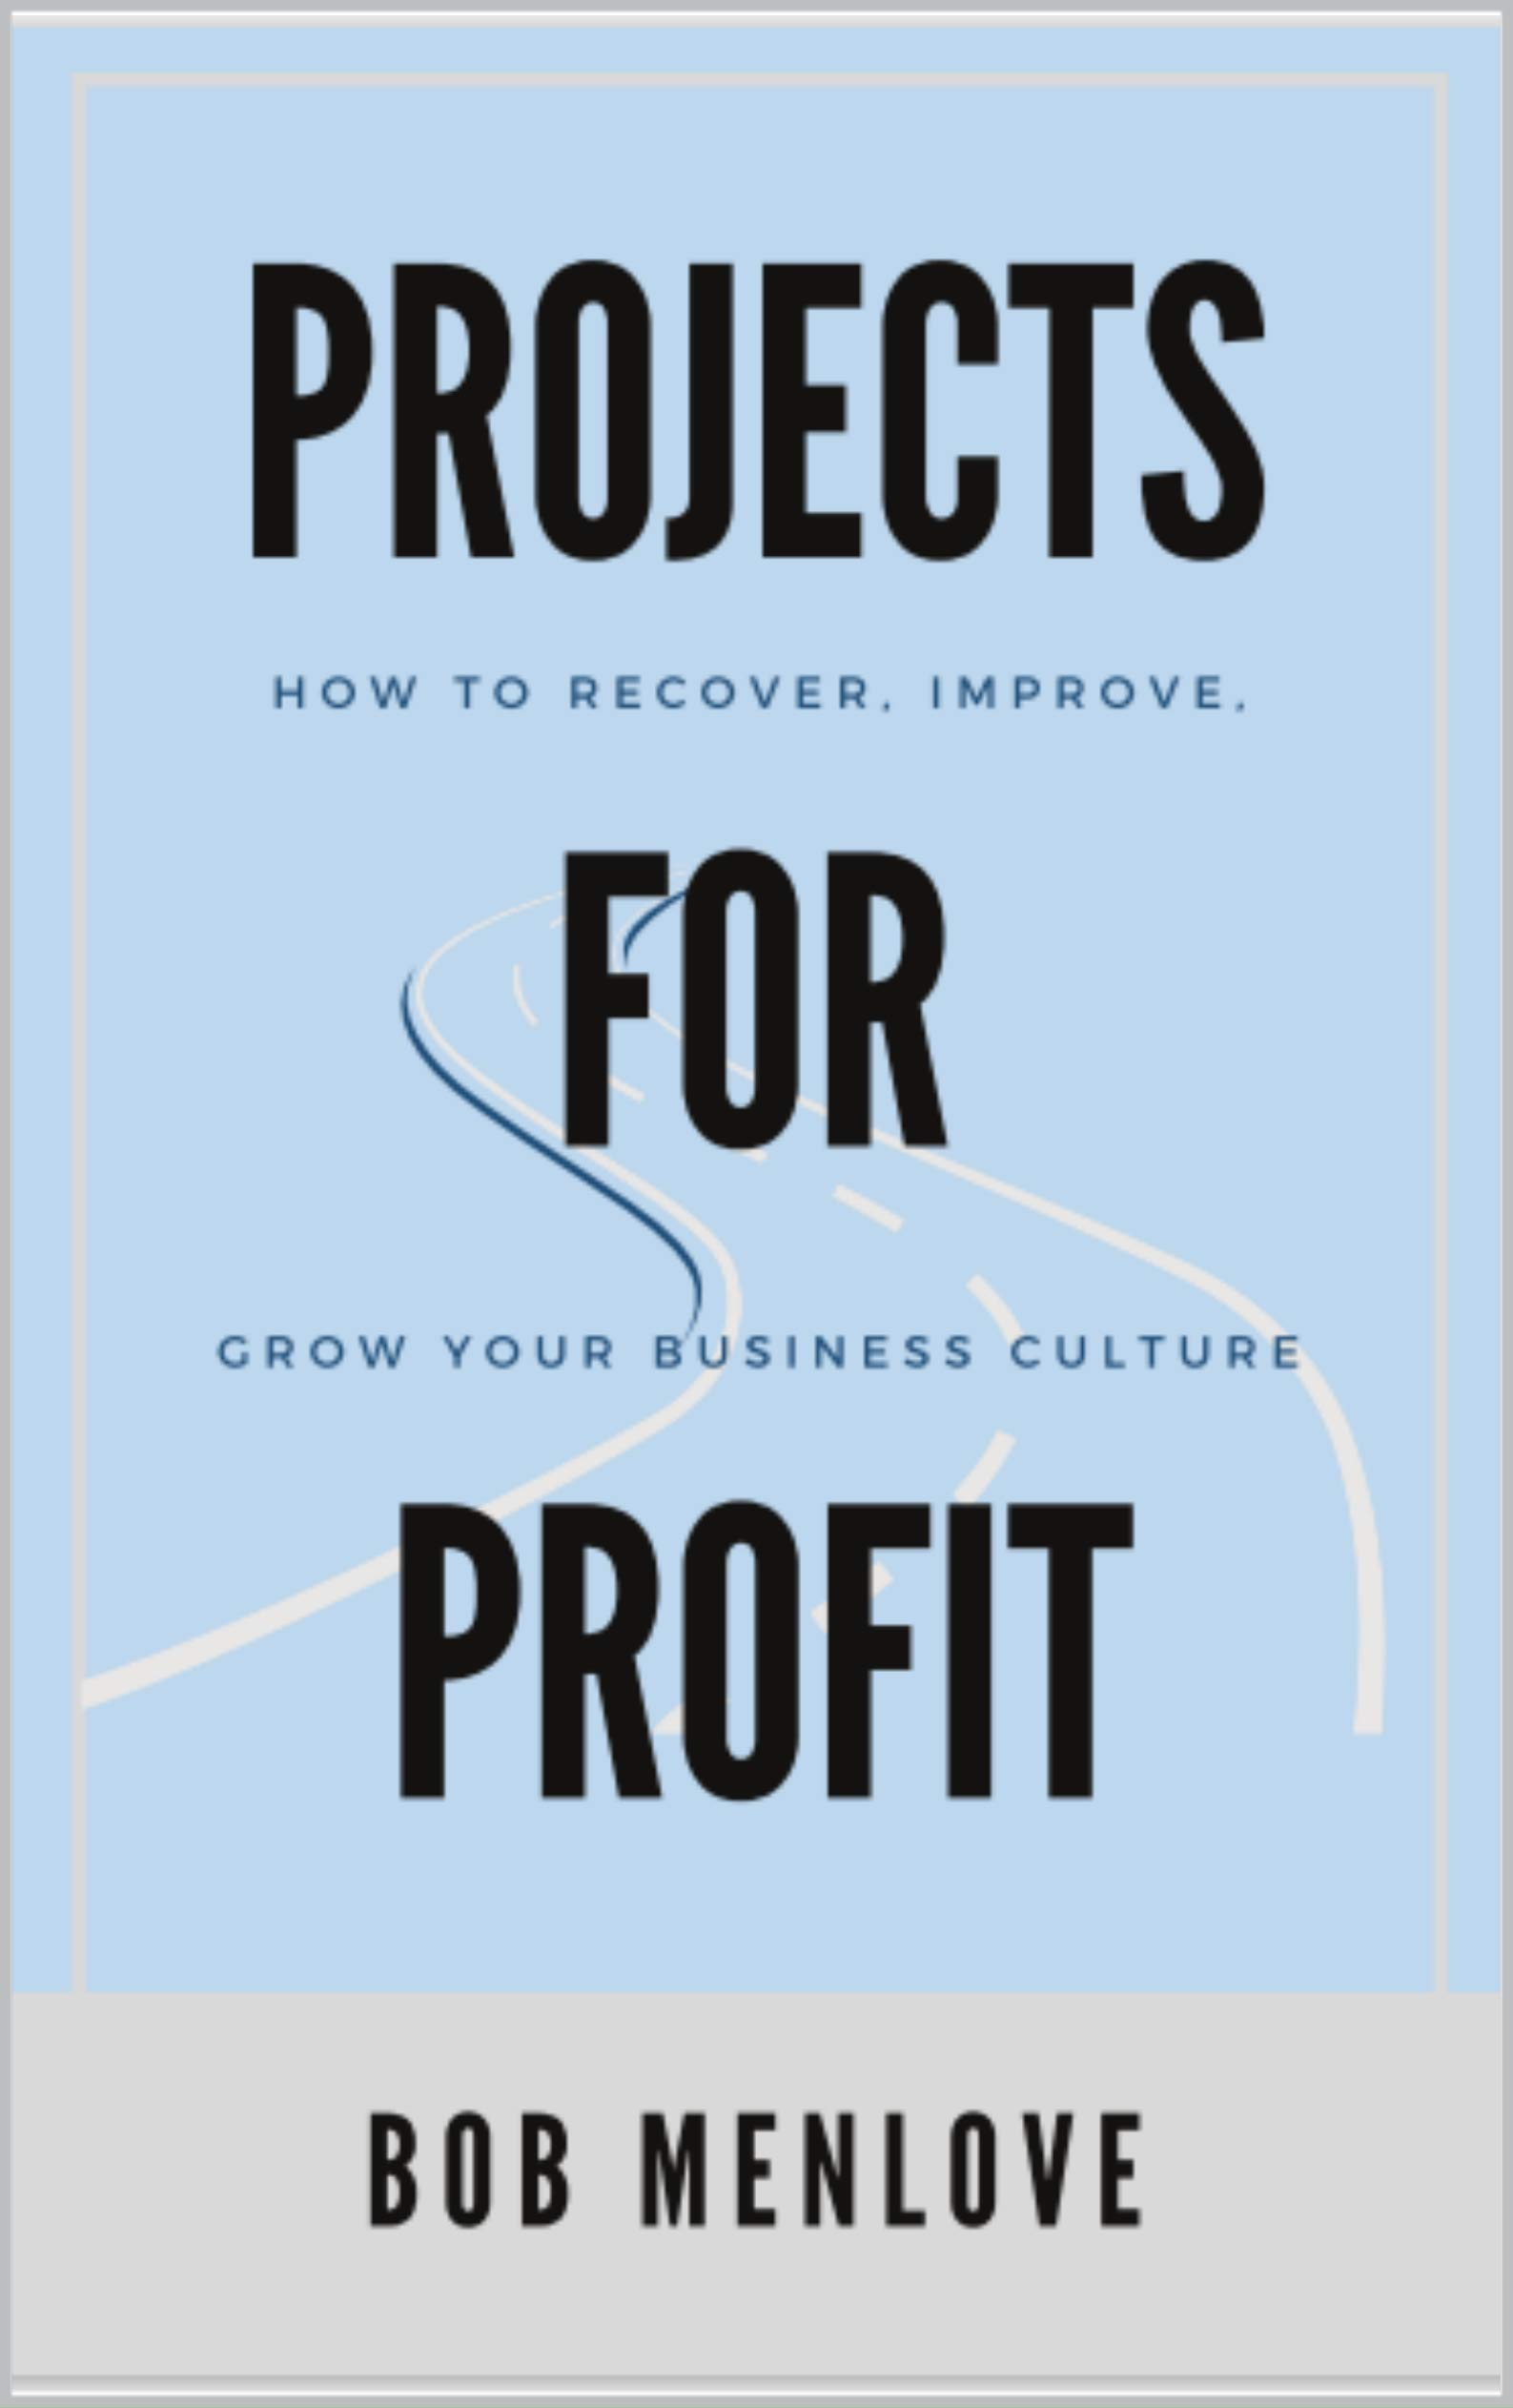 Projects for Profit: How to Recover Improve Grow your Business Culture